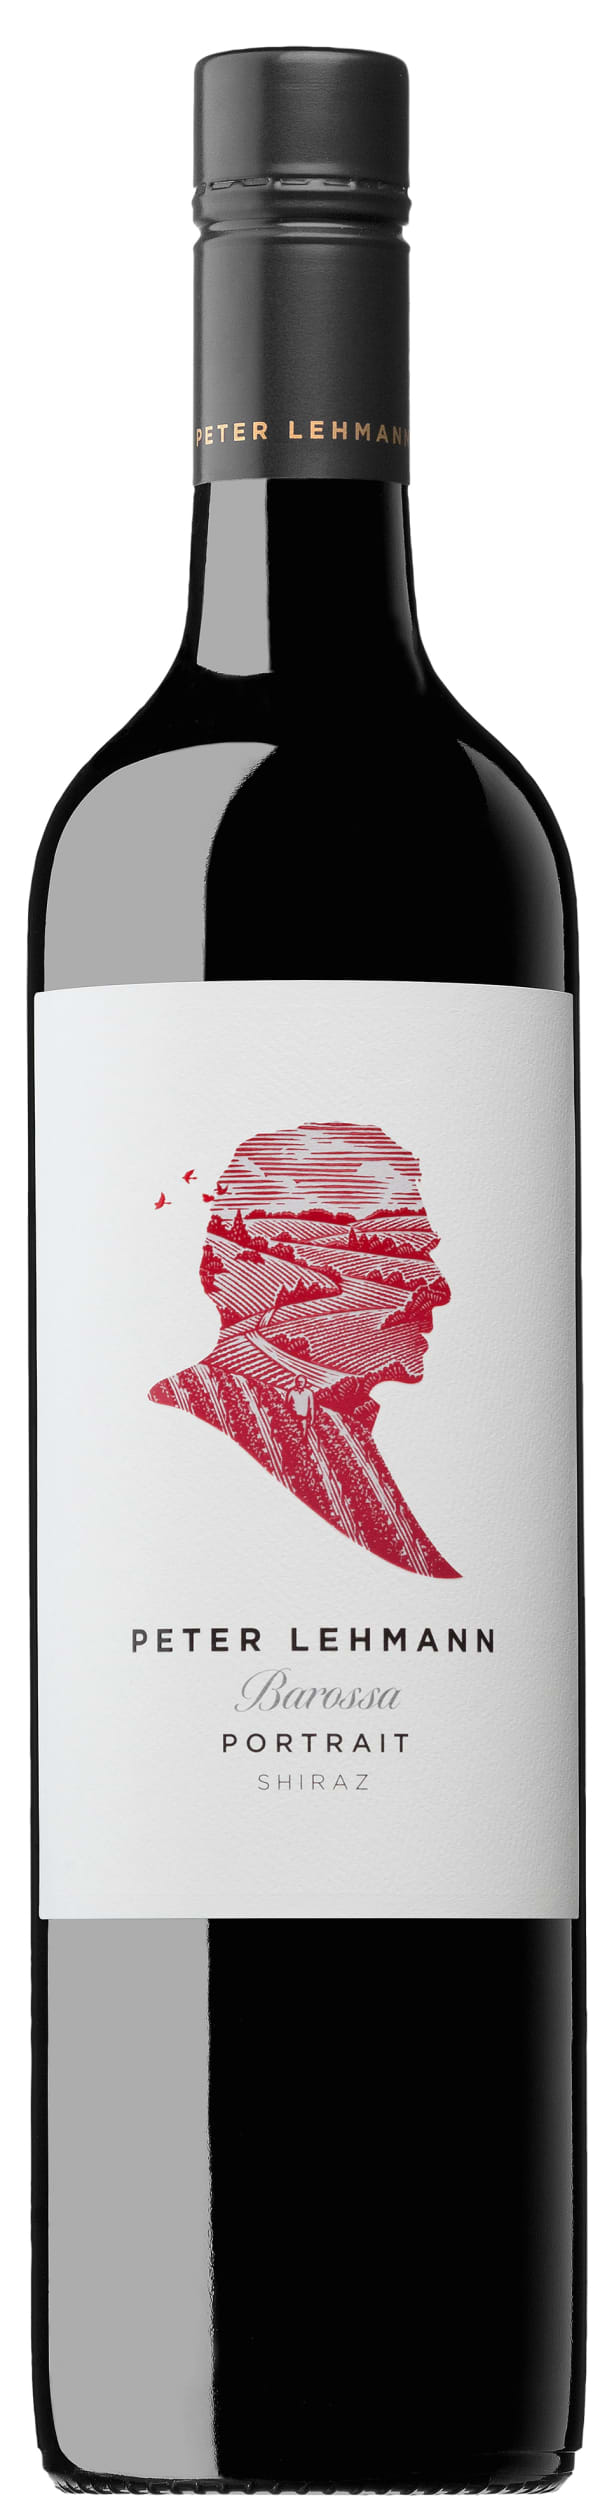 Peter Lehmann Portrait Shiraz 2017